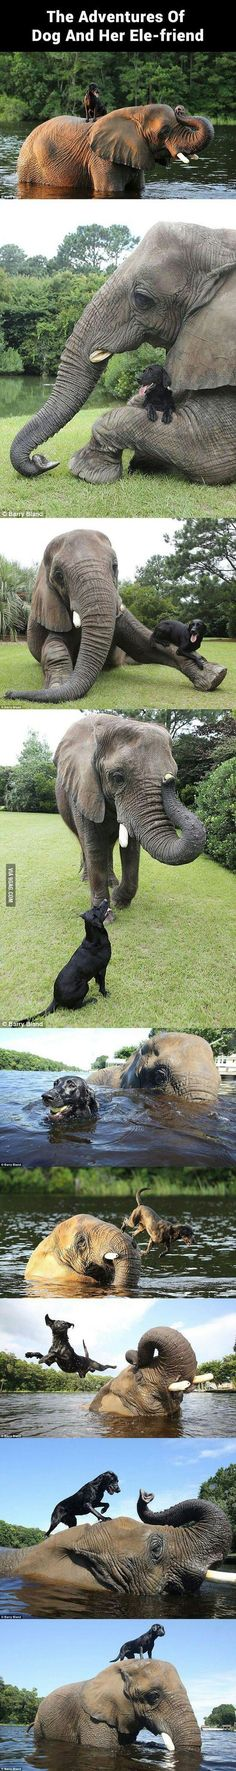 The cutest and most unlikely animal friendship you'll see - Adventure of Dog and her Ele-friend. #dog #elephant #animals